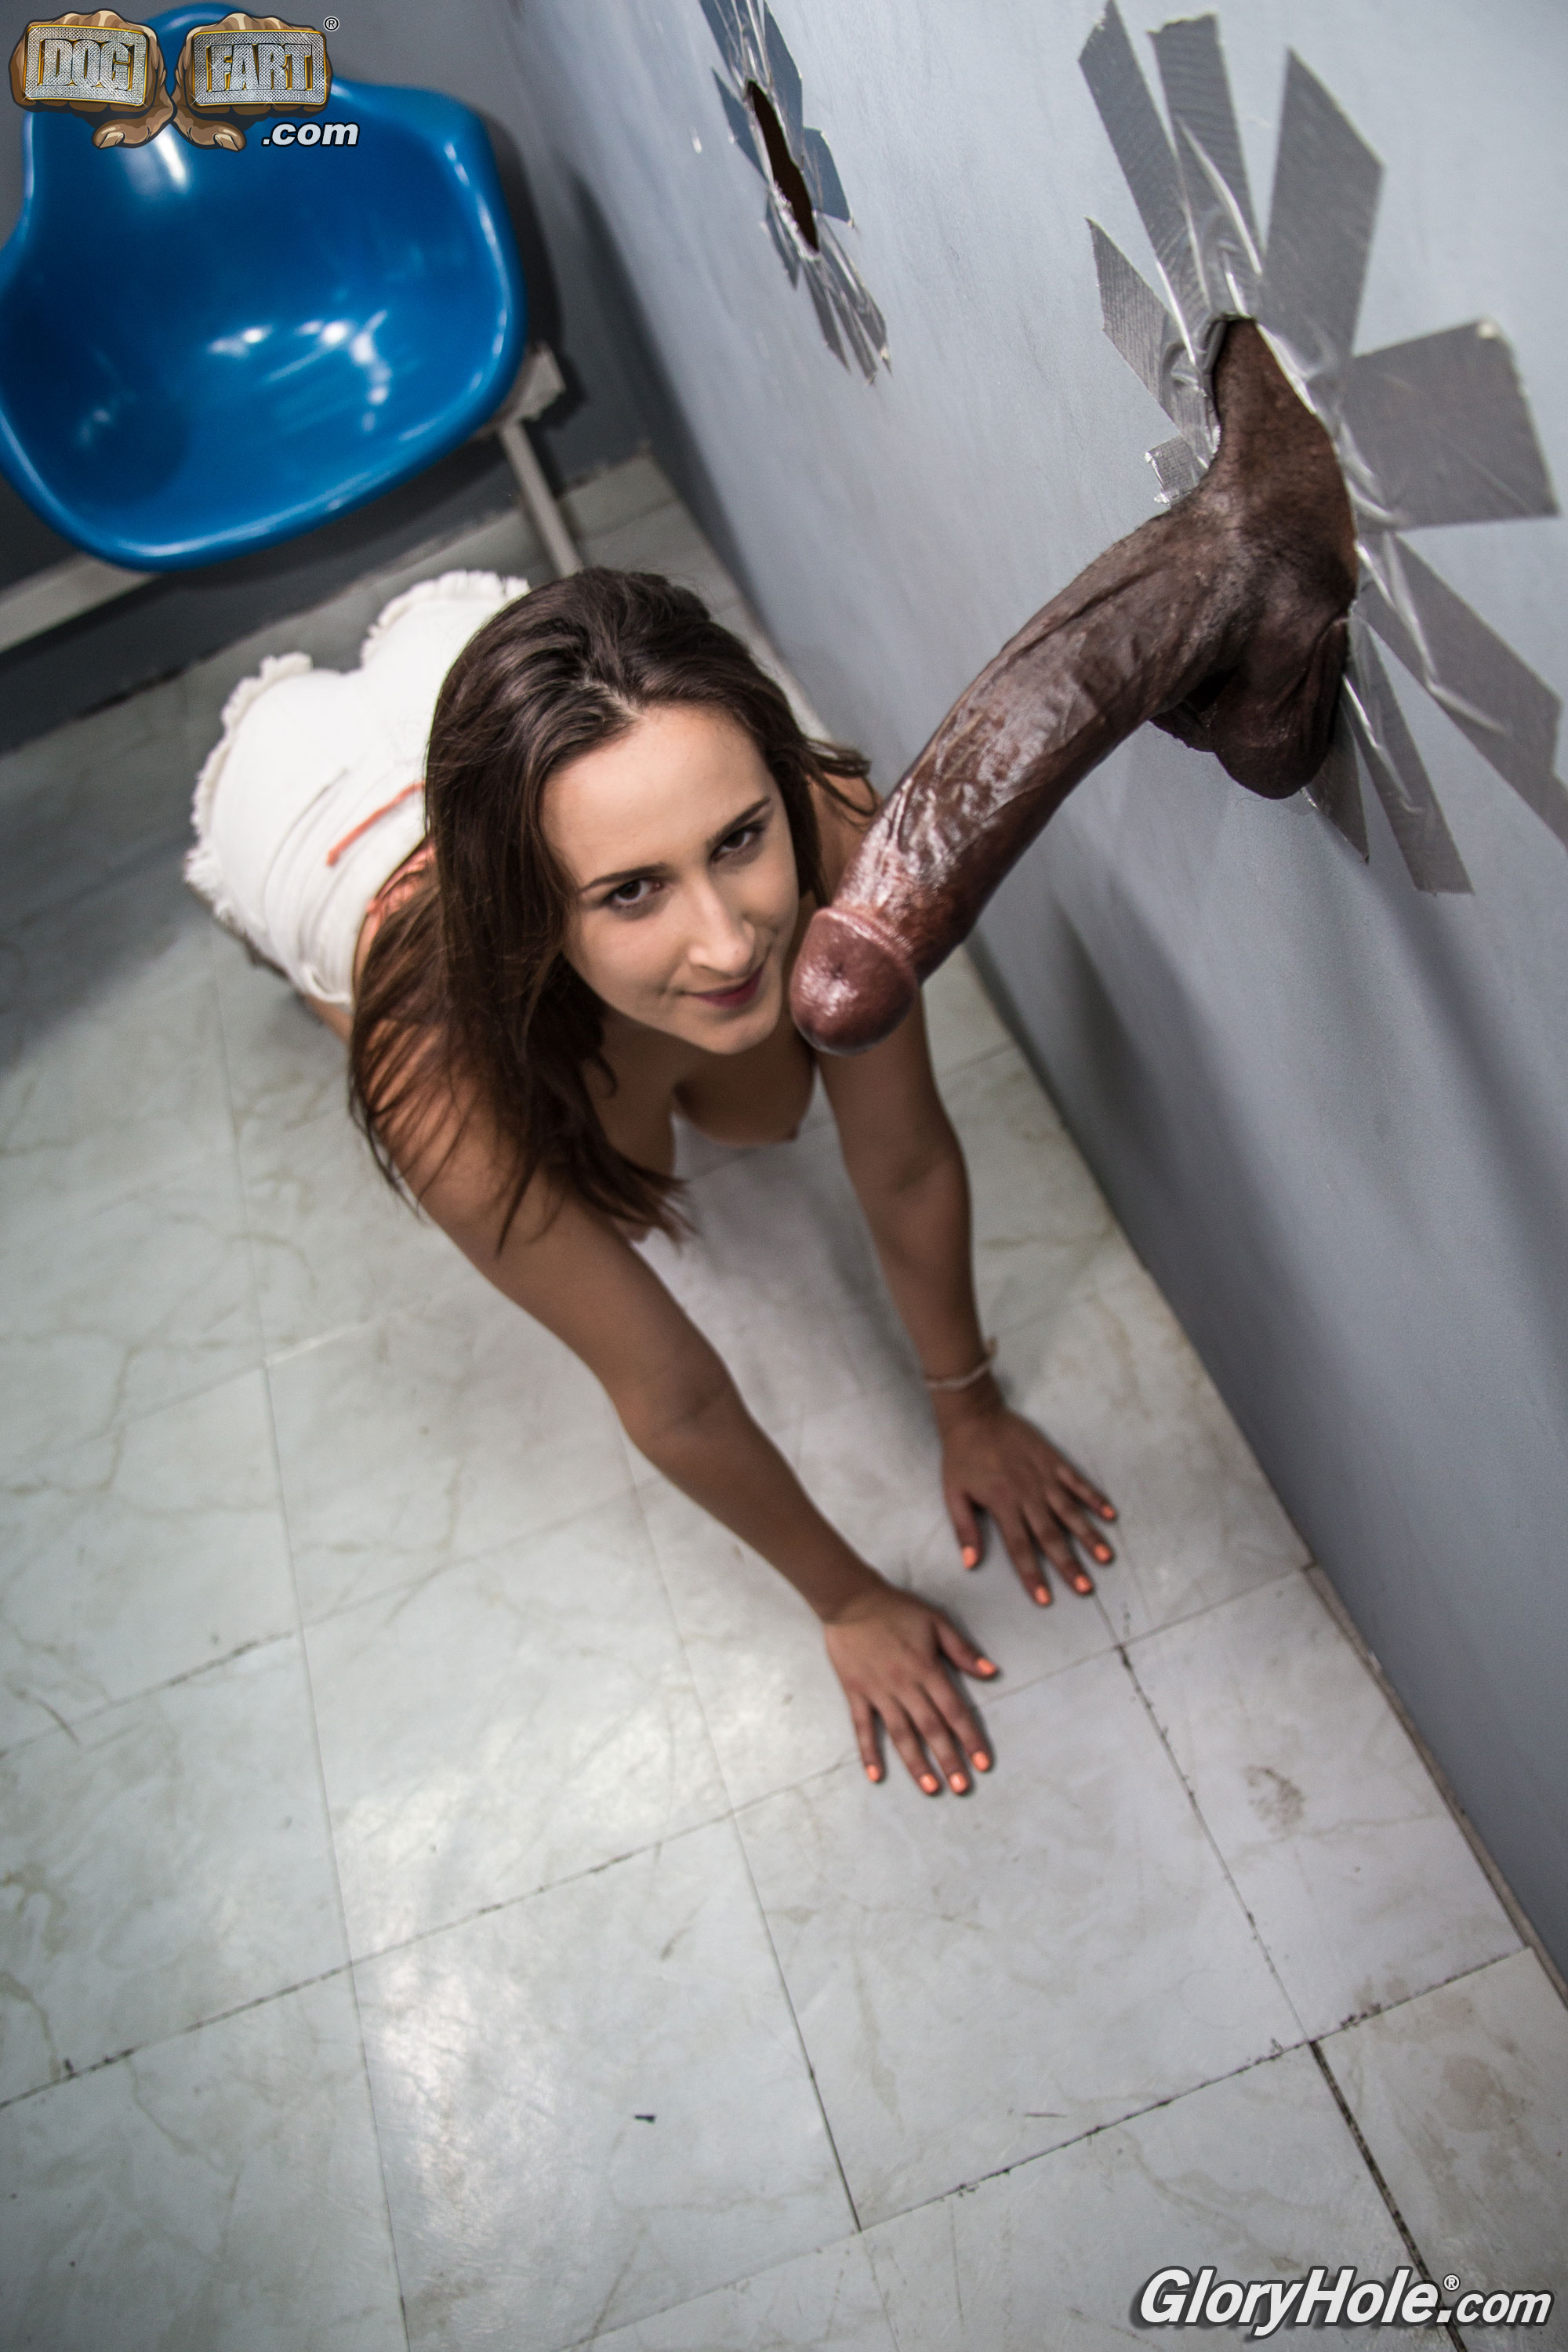 Ashley adams gloryhole